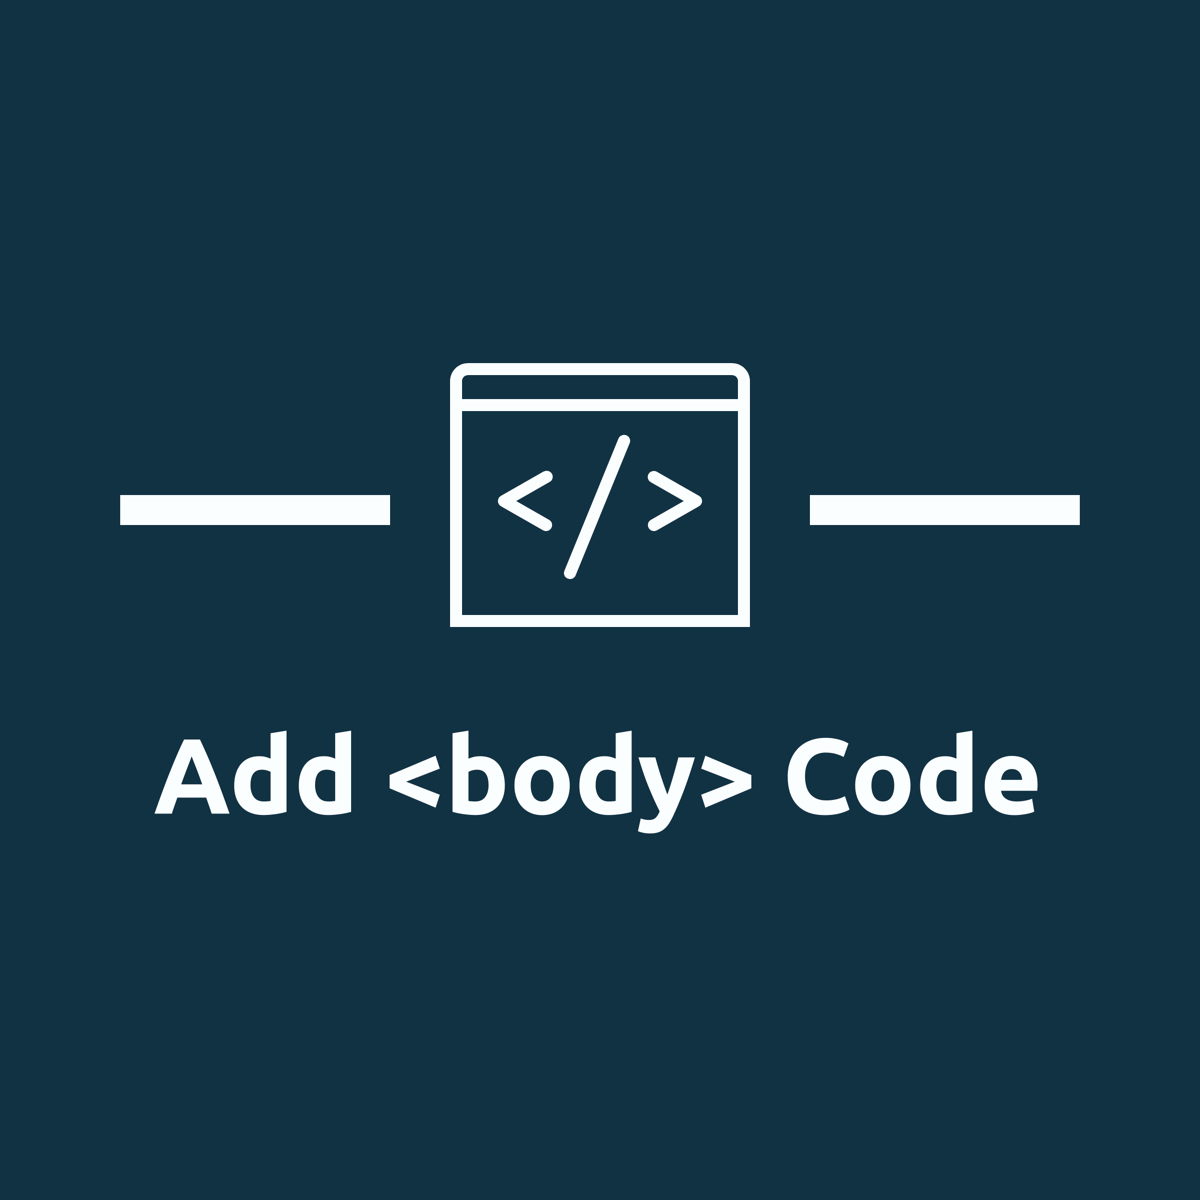 Hire Shopify Experts to integrate Add <BODY> Code app into a Shopify store